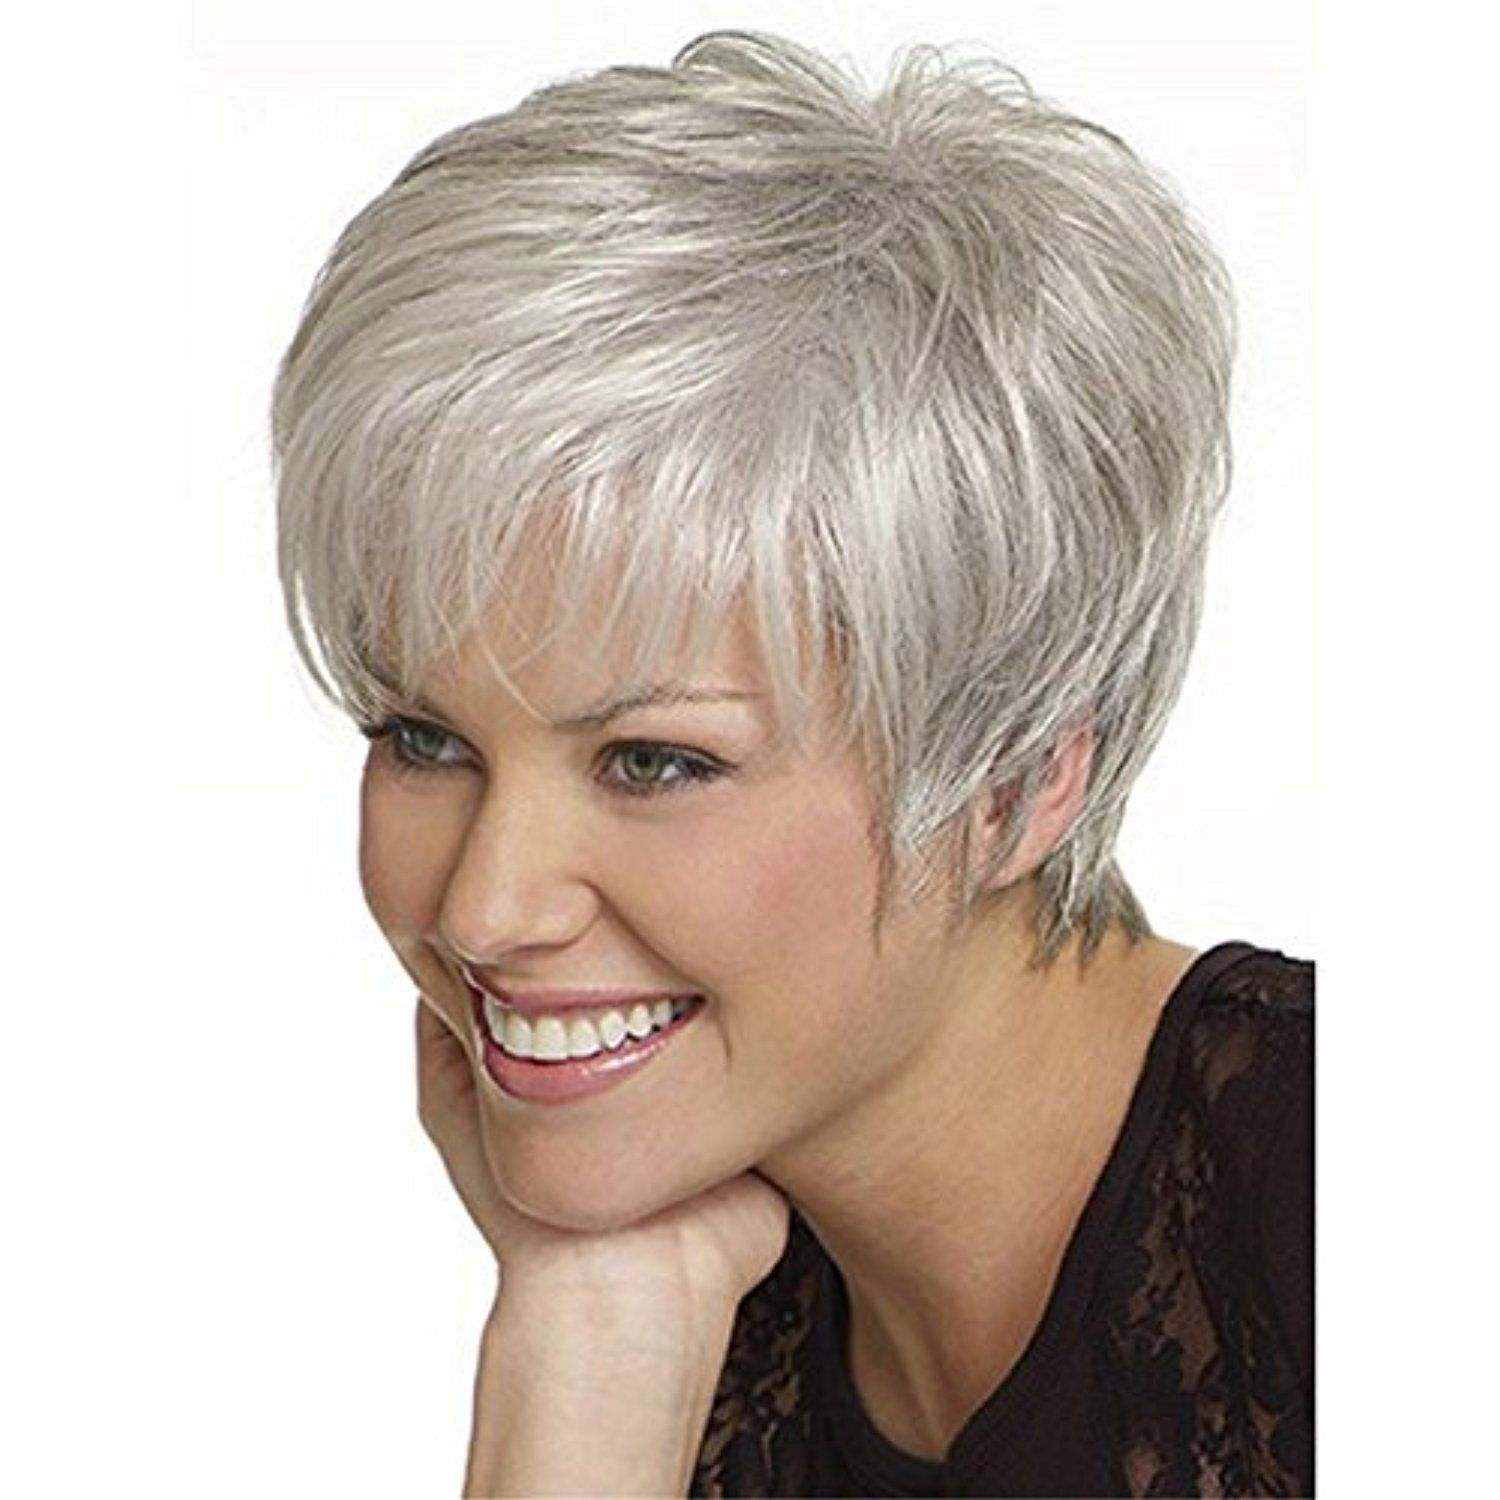 Yx womenus short fluffy wavy silver white synthetic wigs ueueue learn